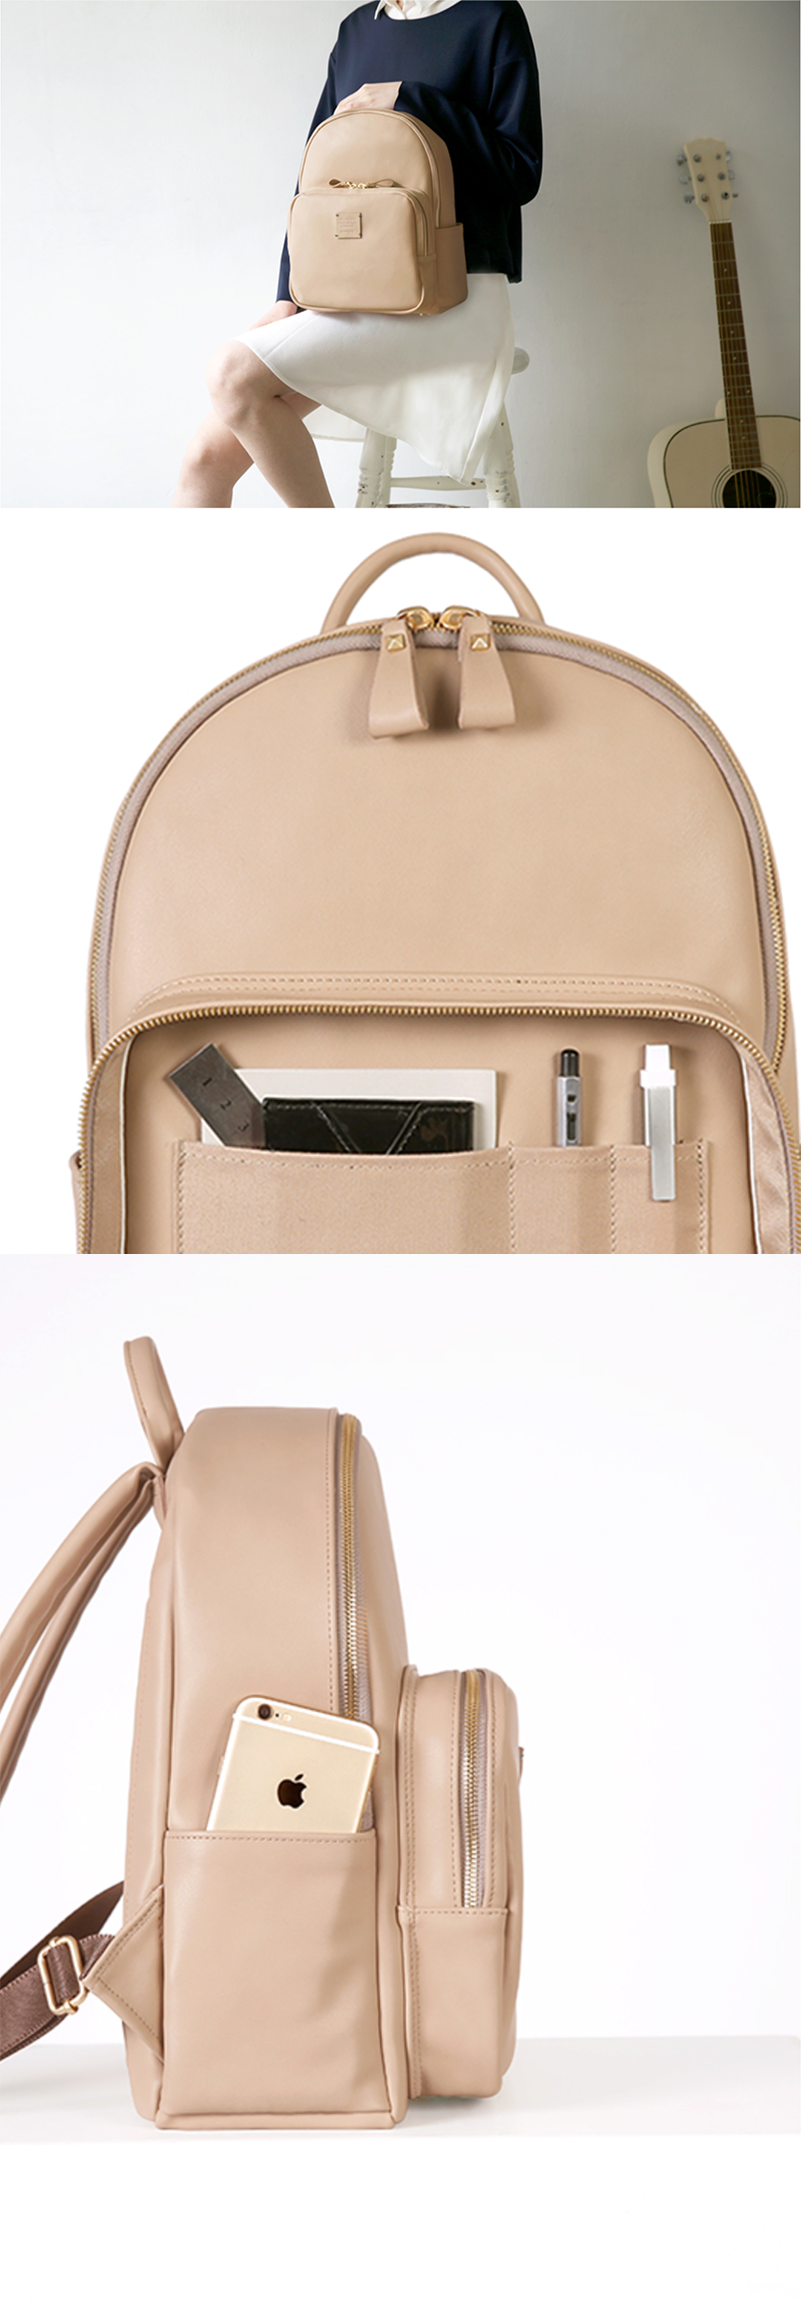 Take your style to the next level with the beautiful and timeless Square Mini Office Leather Backpack!